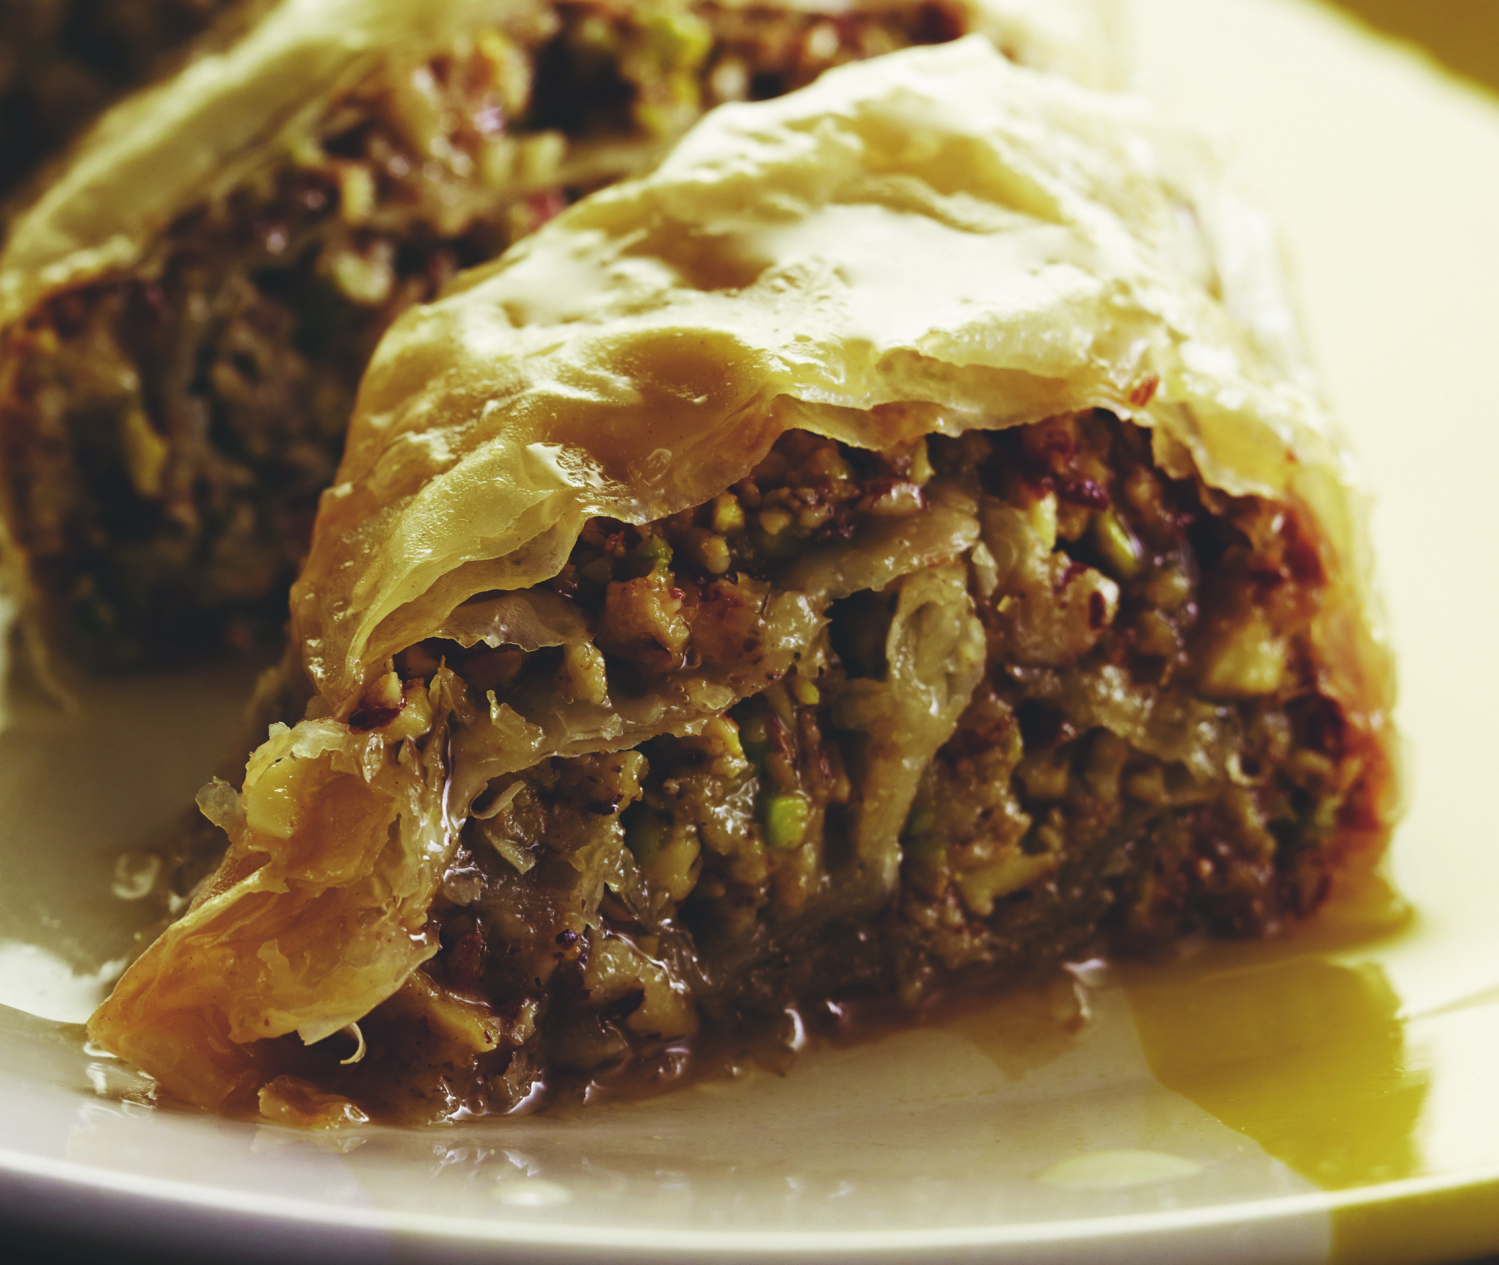 """Halvah Baklavah - this sticky, sweet, delicious Middle Eastern pastry made with phyllo sheets, crushed nuts, and a honeyed syrup is straight out of Susie Fishbein's cookbook, """"Kosher by Design Brings it Home."""" 